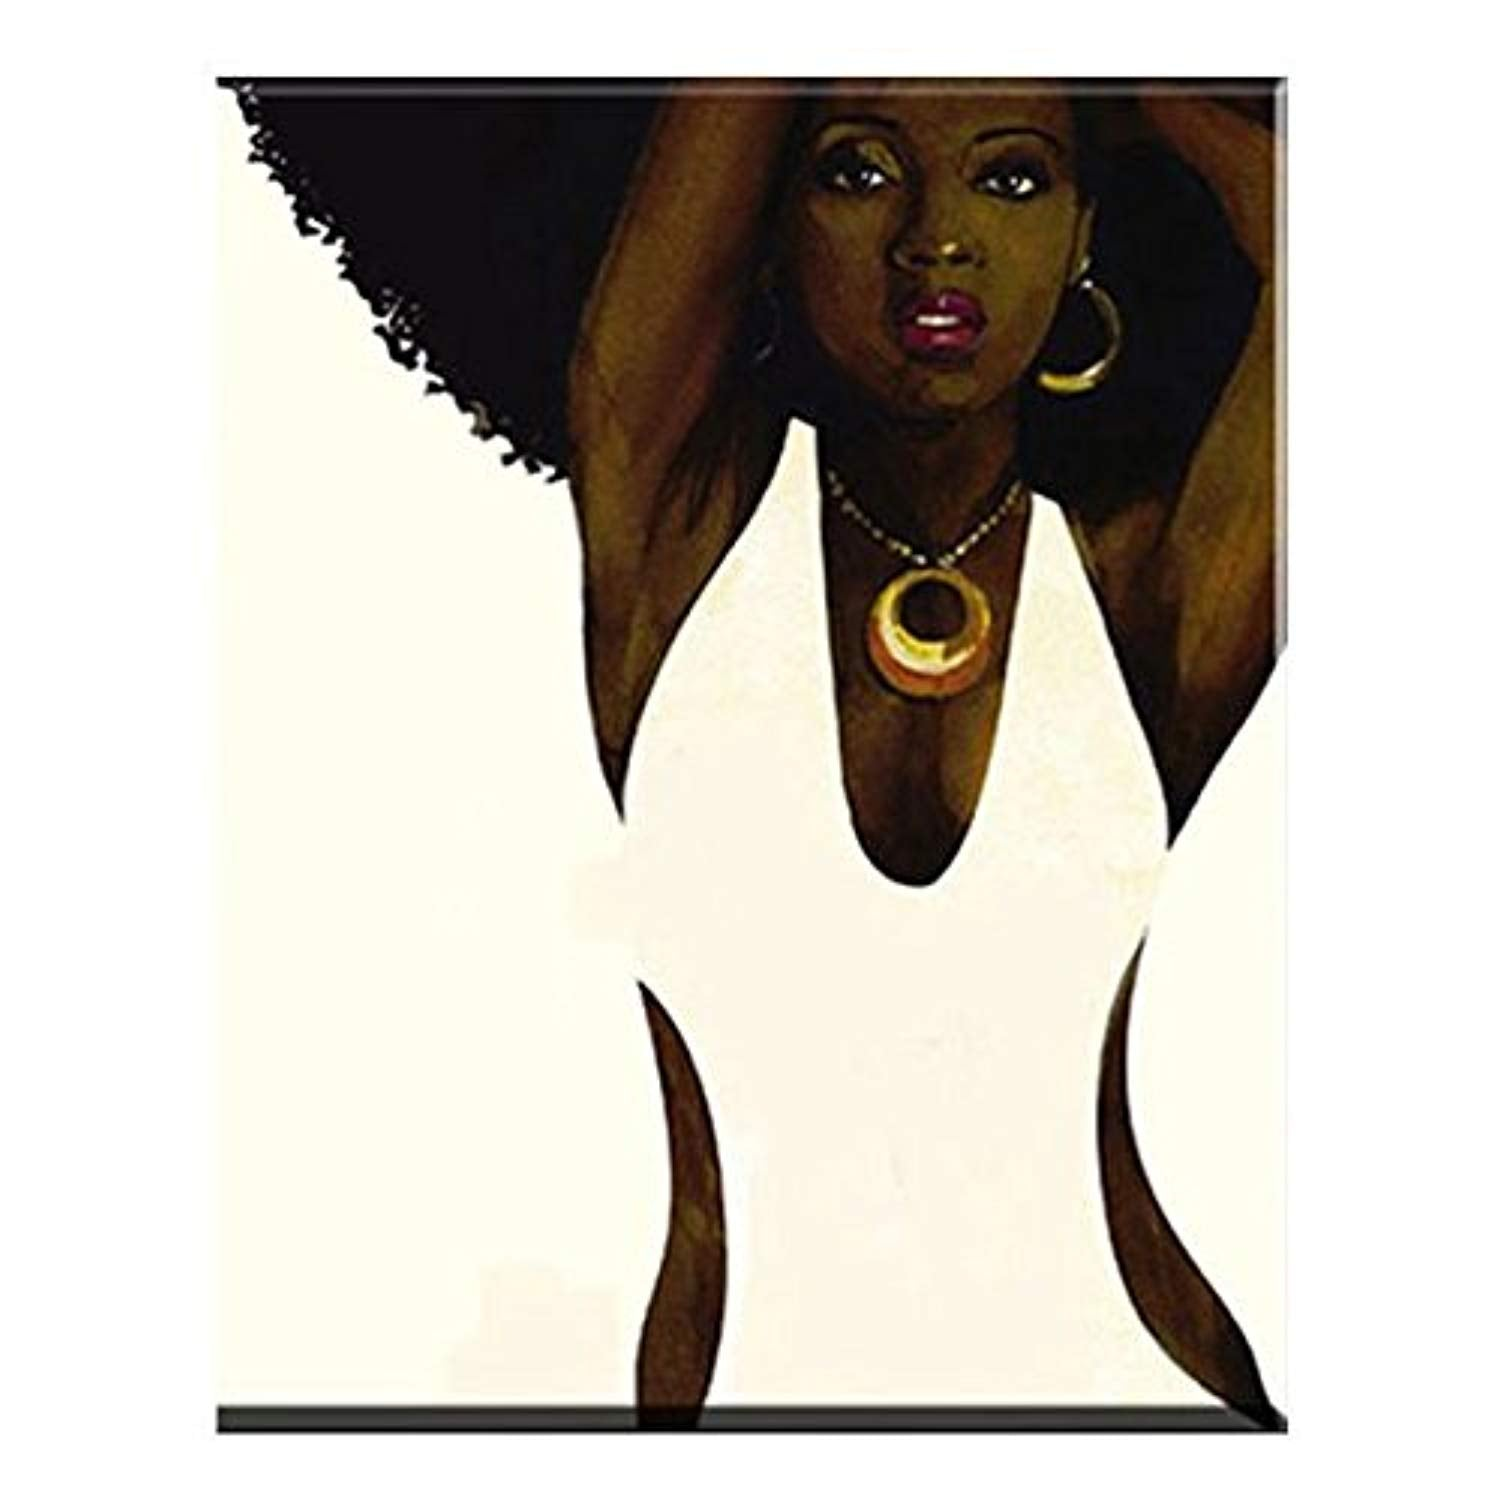 Faicai Art Black and White Wall Art African Afro Sexy Woman Oil Paintings Hand Painted Abstract Portrait Canvas Paintings Home Decor Art Work Pictures for Living Room Bedroom Wooden Framed 20x24 inch - Ufumbuzi - Home